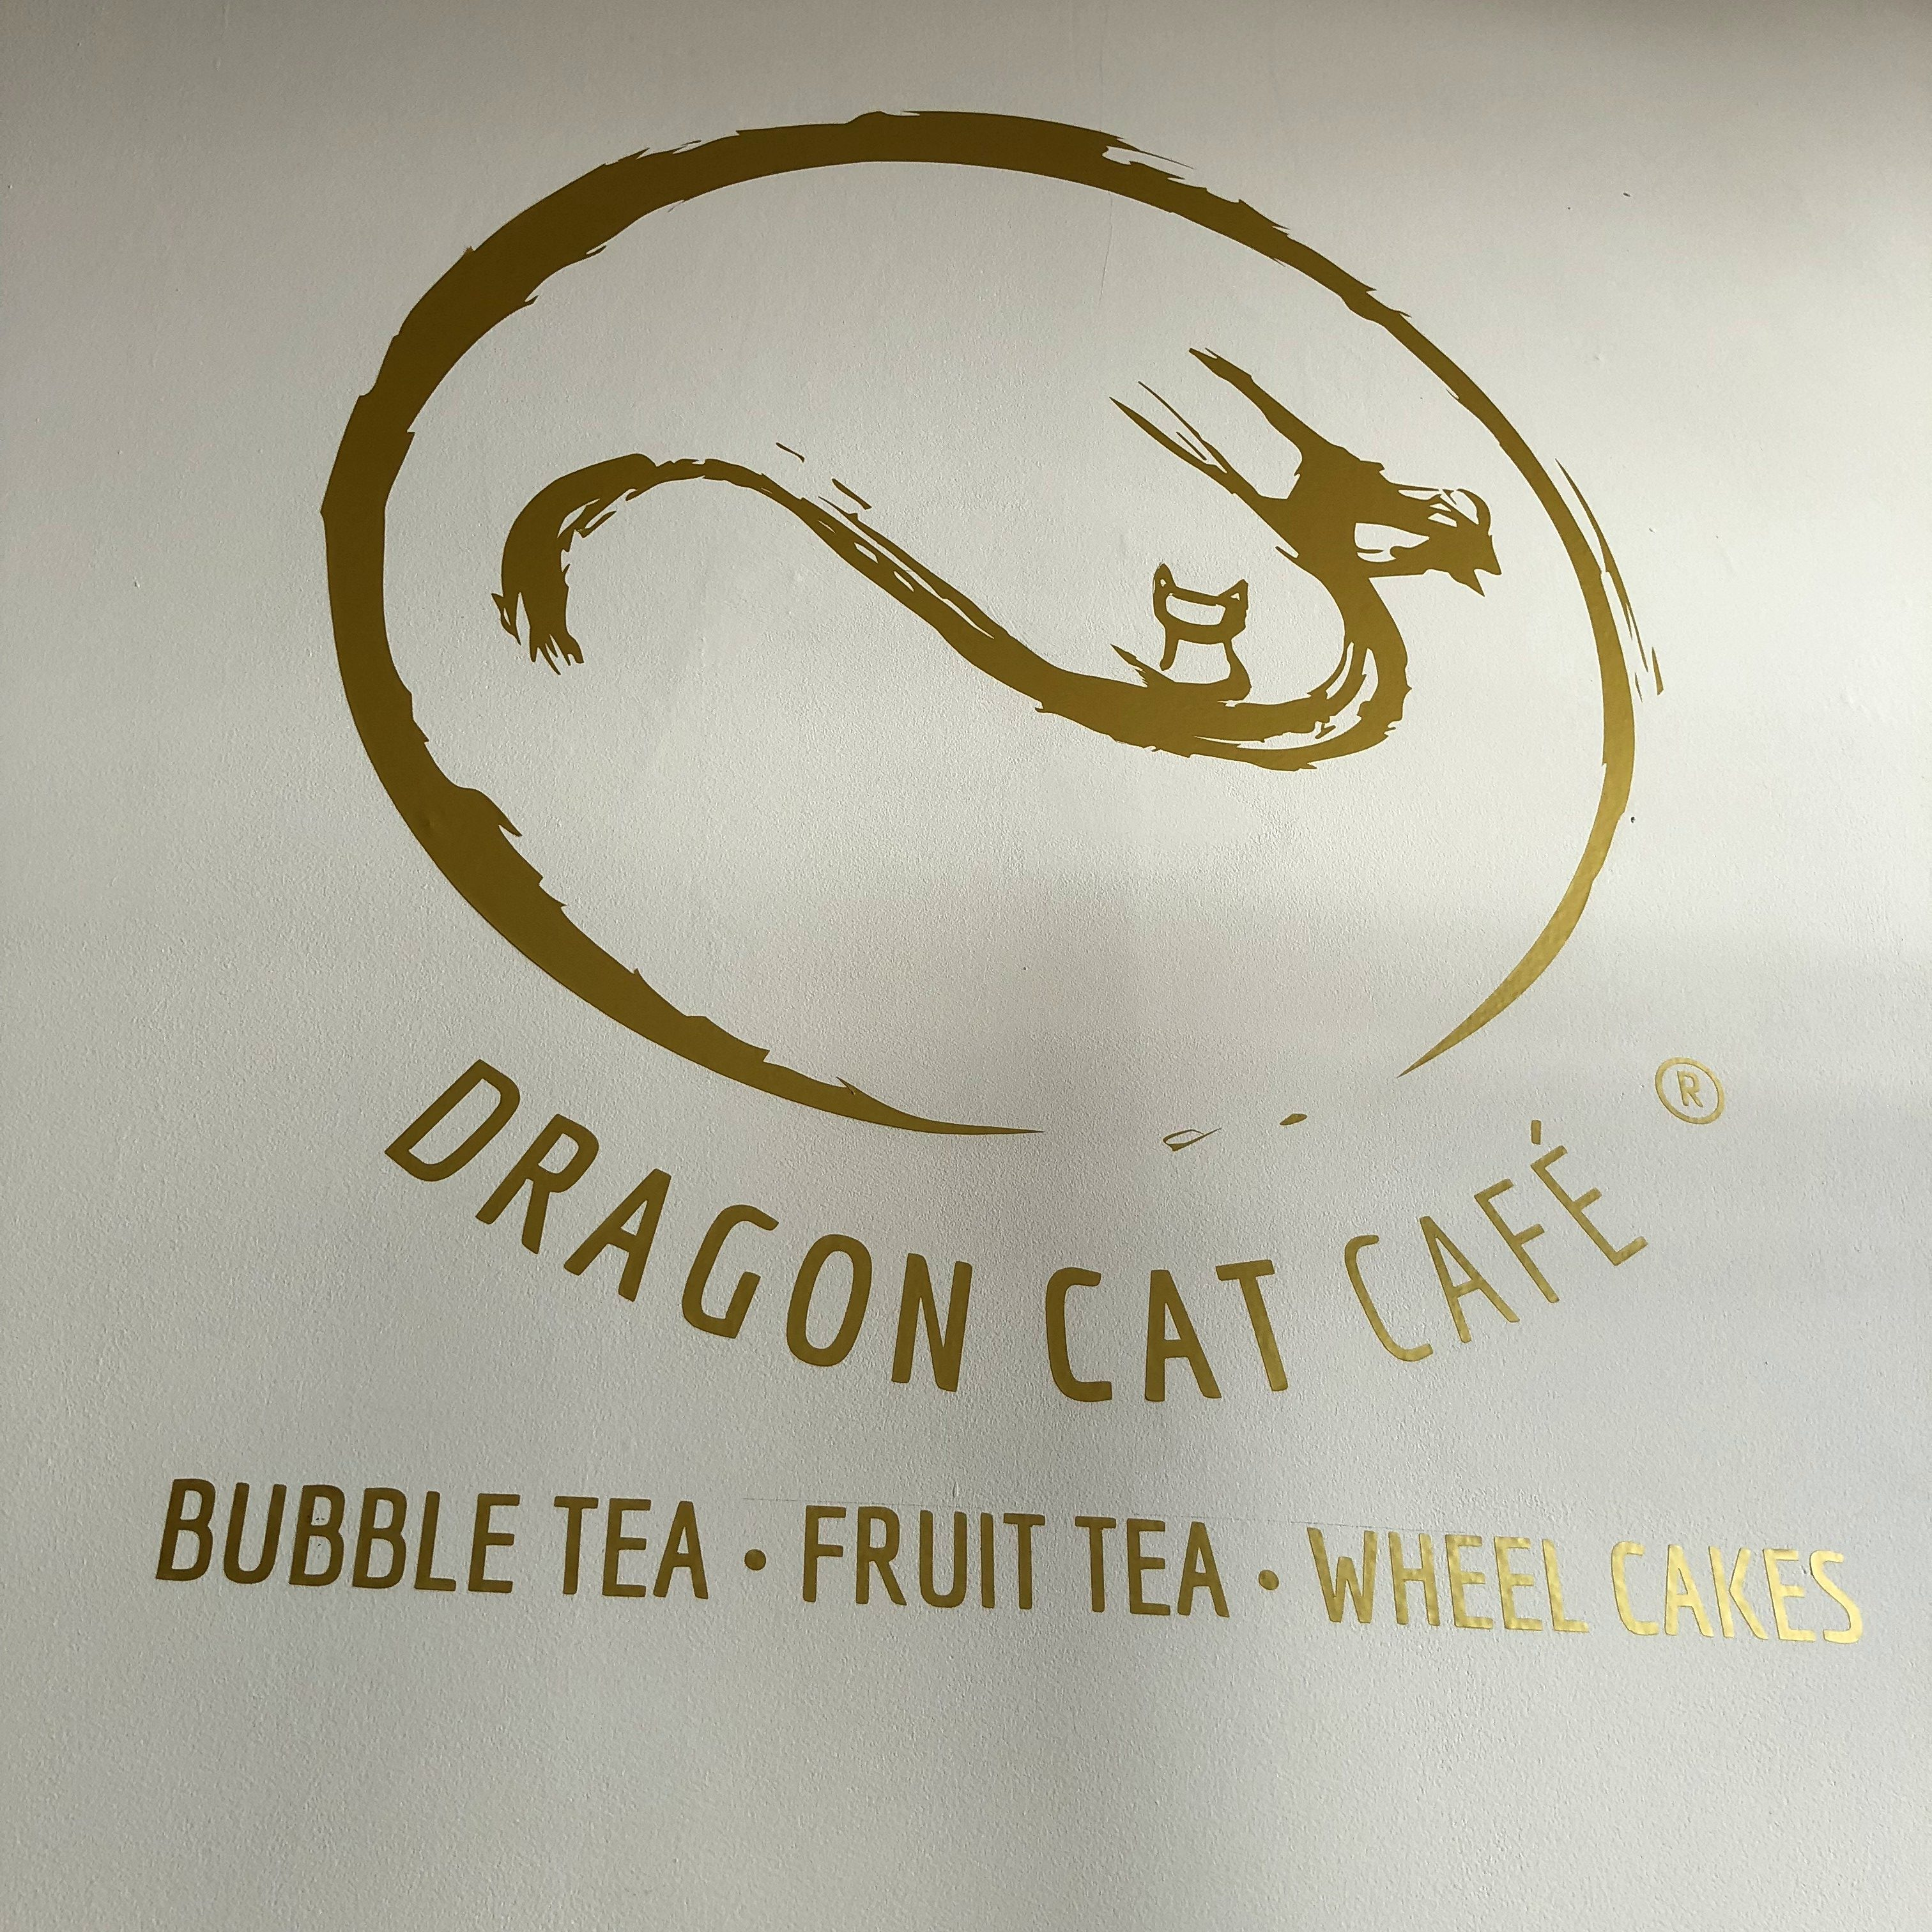 Dragon Cat Cafe